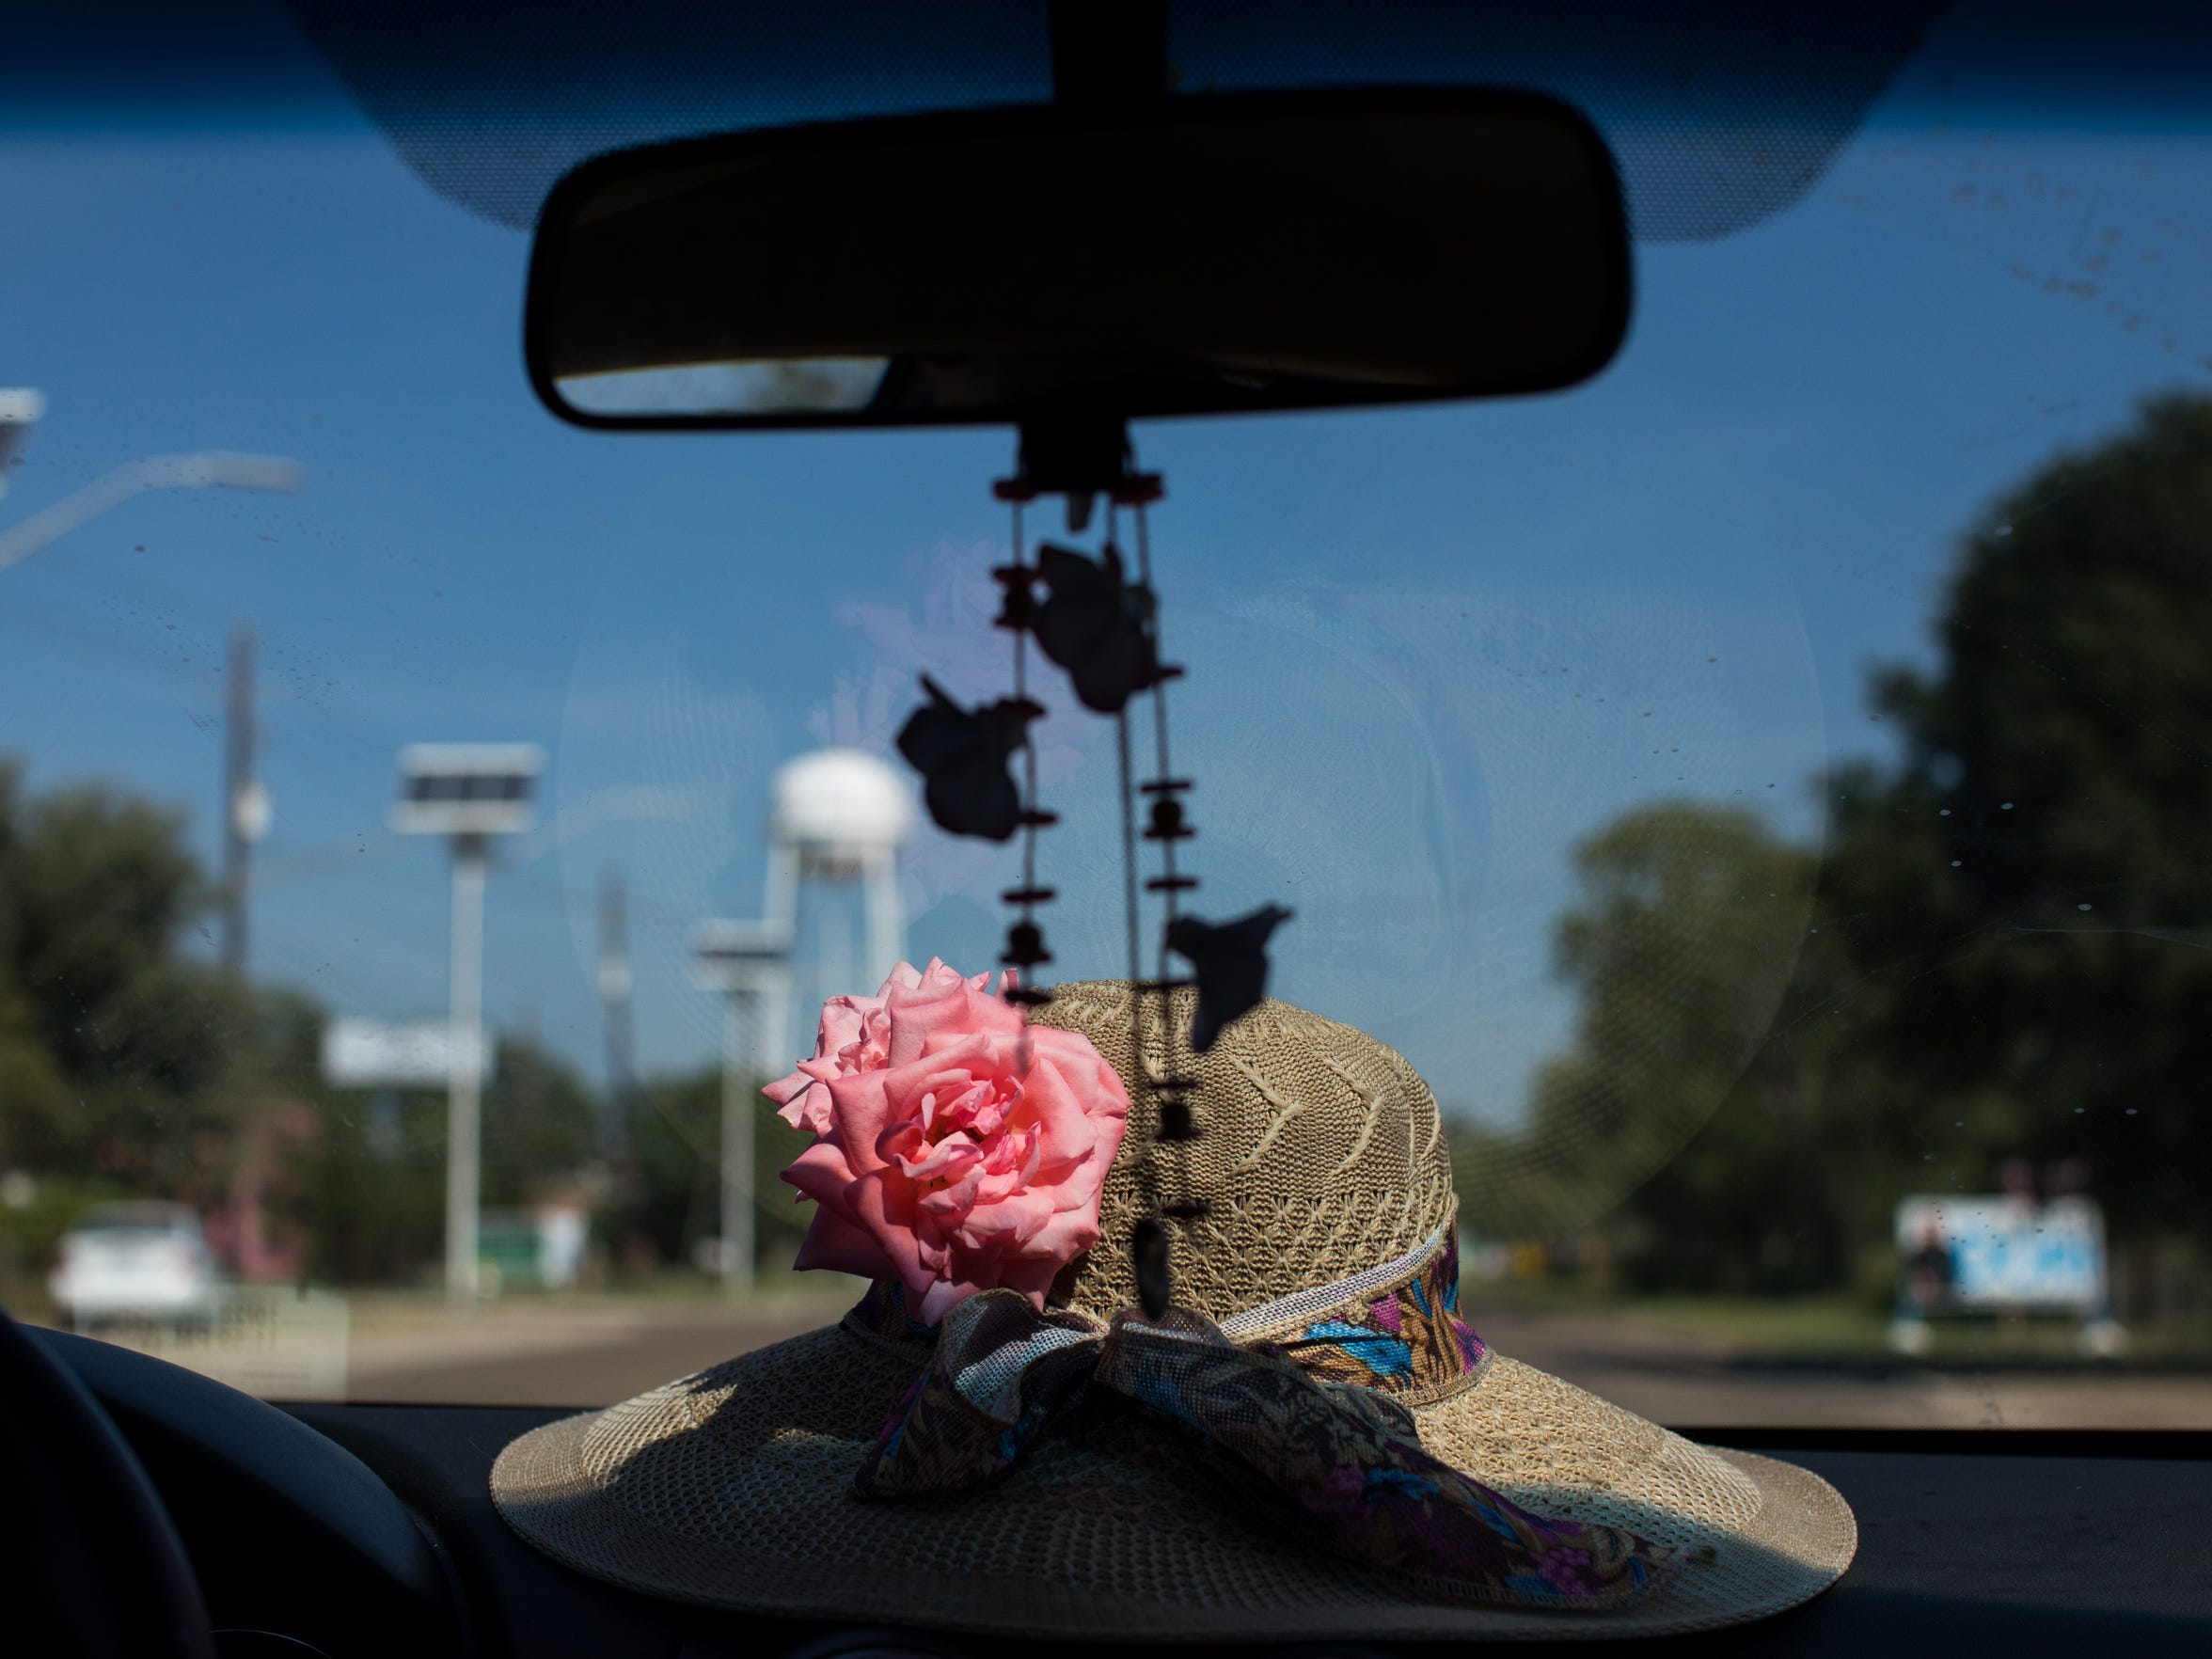 A flower sits on a hat in the front window of Maria Hernandez's car as she drives home to Kingsville, Texas from her mother's house in Alamo, Texas on Sunday, Nov. 7, 2017. Hernandez was brought to the U.S from Mexico at the age of 4 by her grandmother to escape an abusive father. She's a DACA recipient.